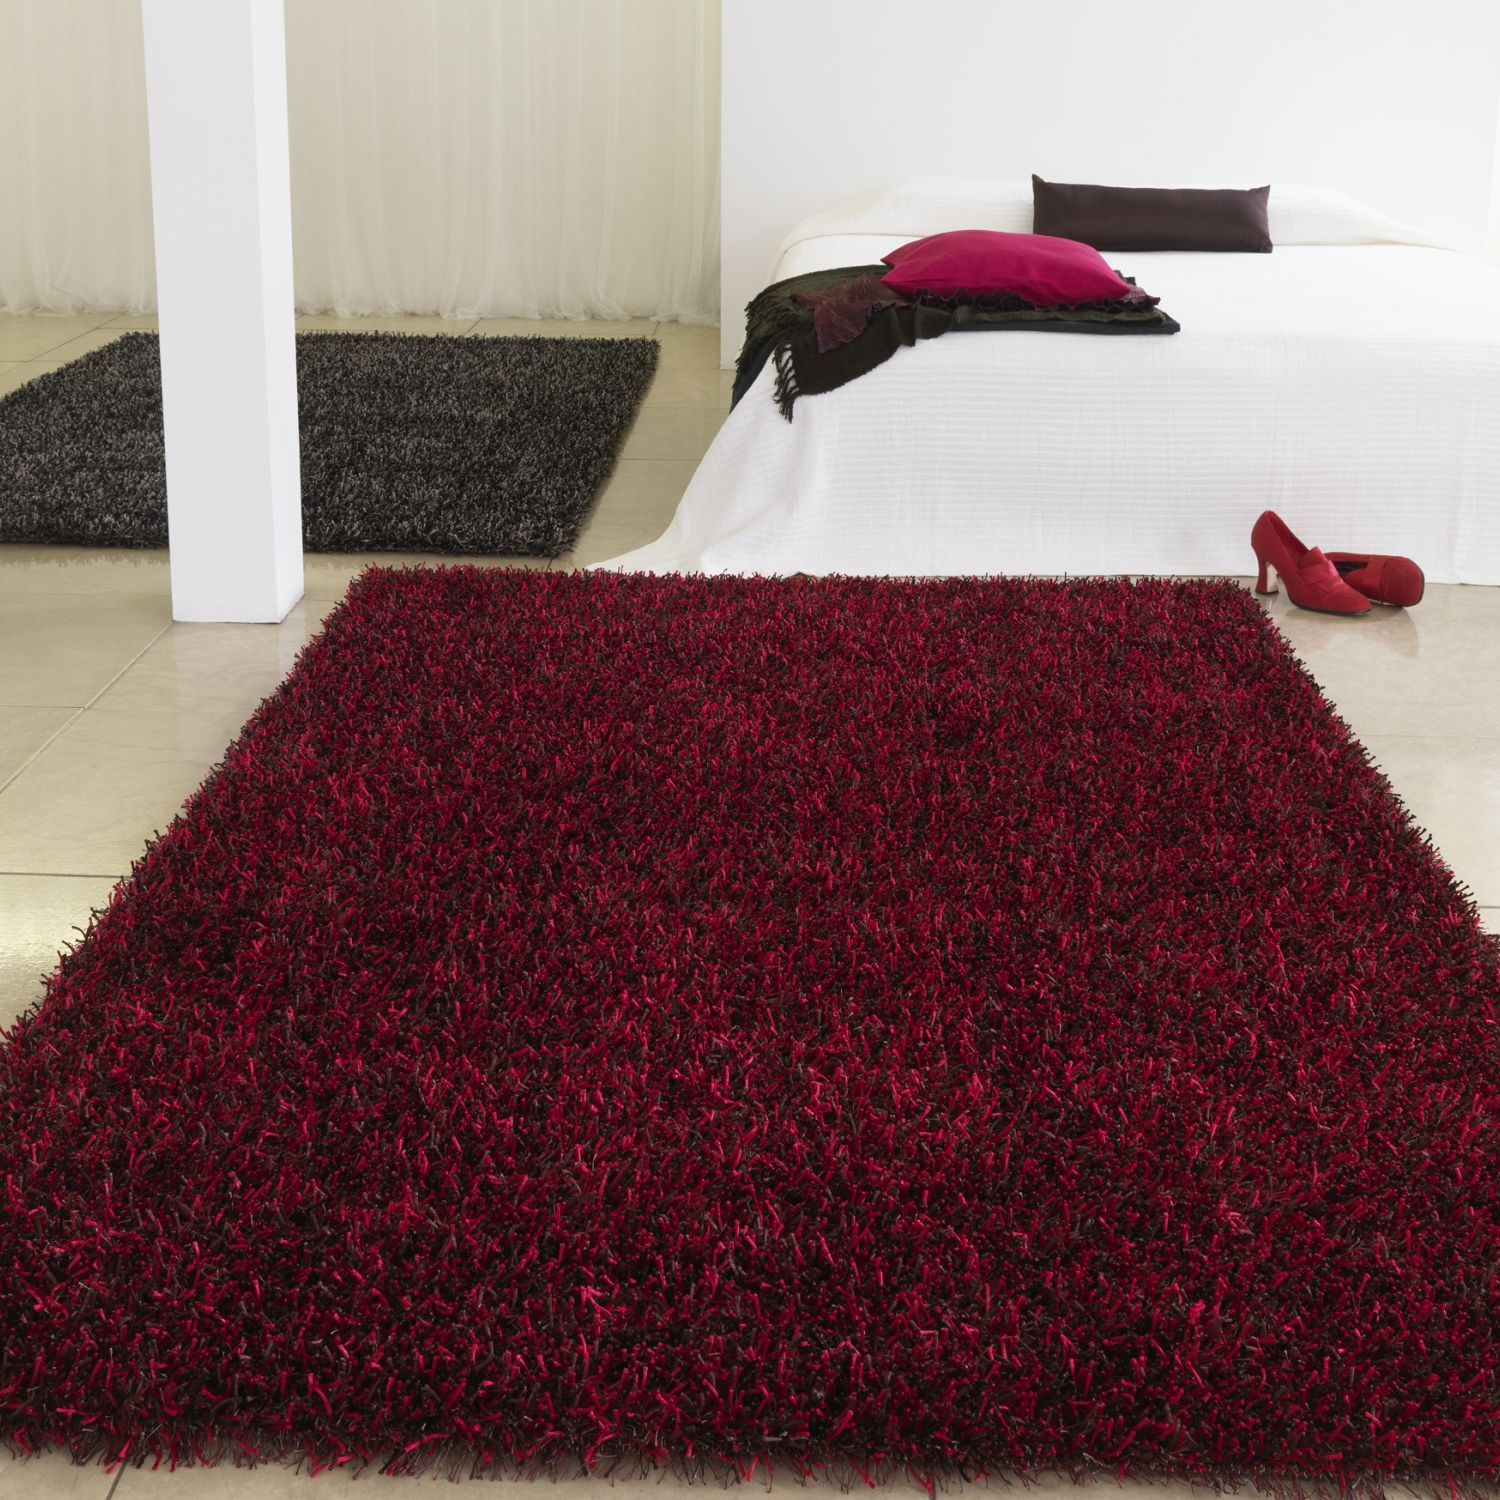 Carpetright Damson Red rug / interior design (With images